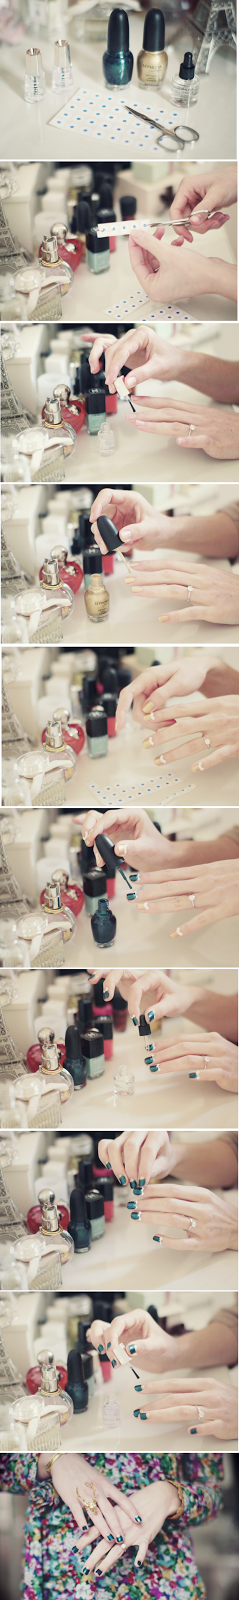 How to : Easier Gorgeous Nails Tutorials / Best LoLus Nails Fashion